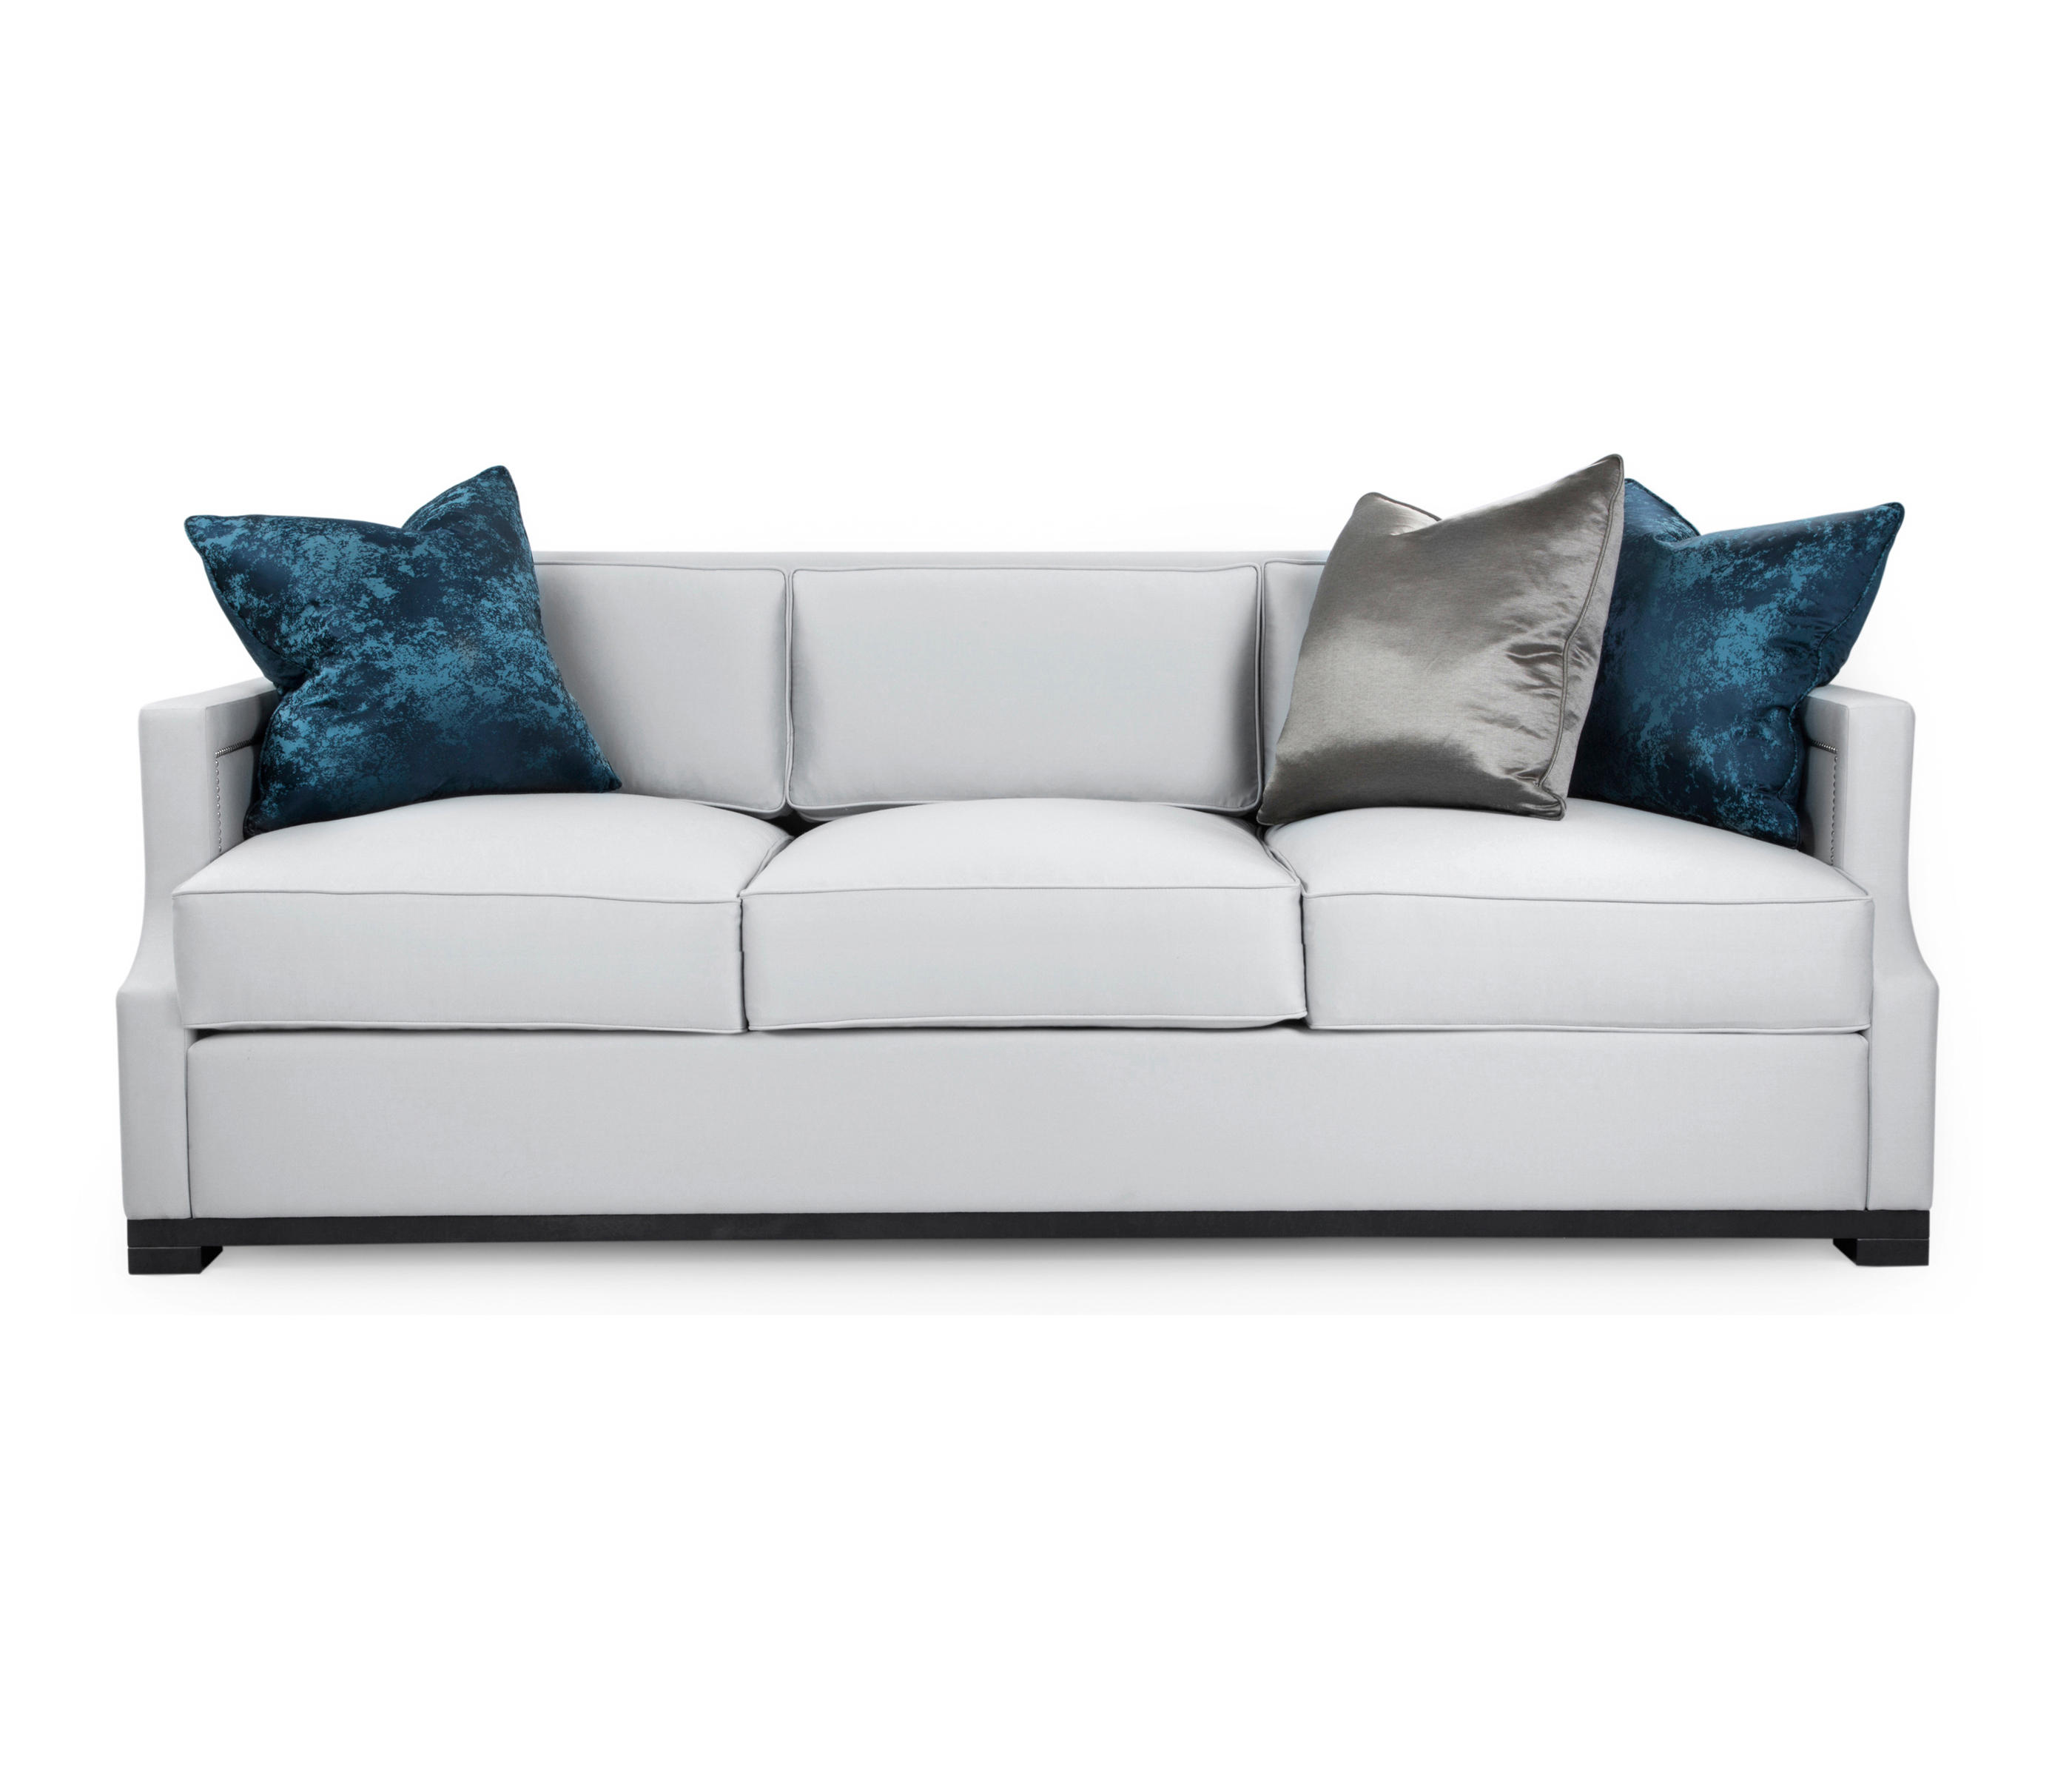 Belvedere sofa lounge sofas from the sofa chair for Meubles concept chaise